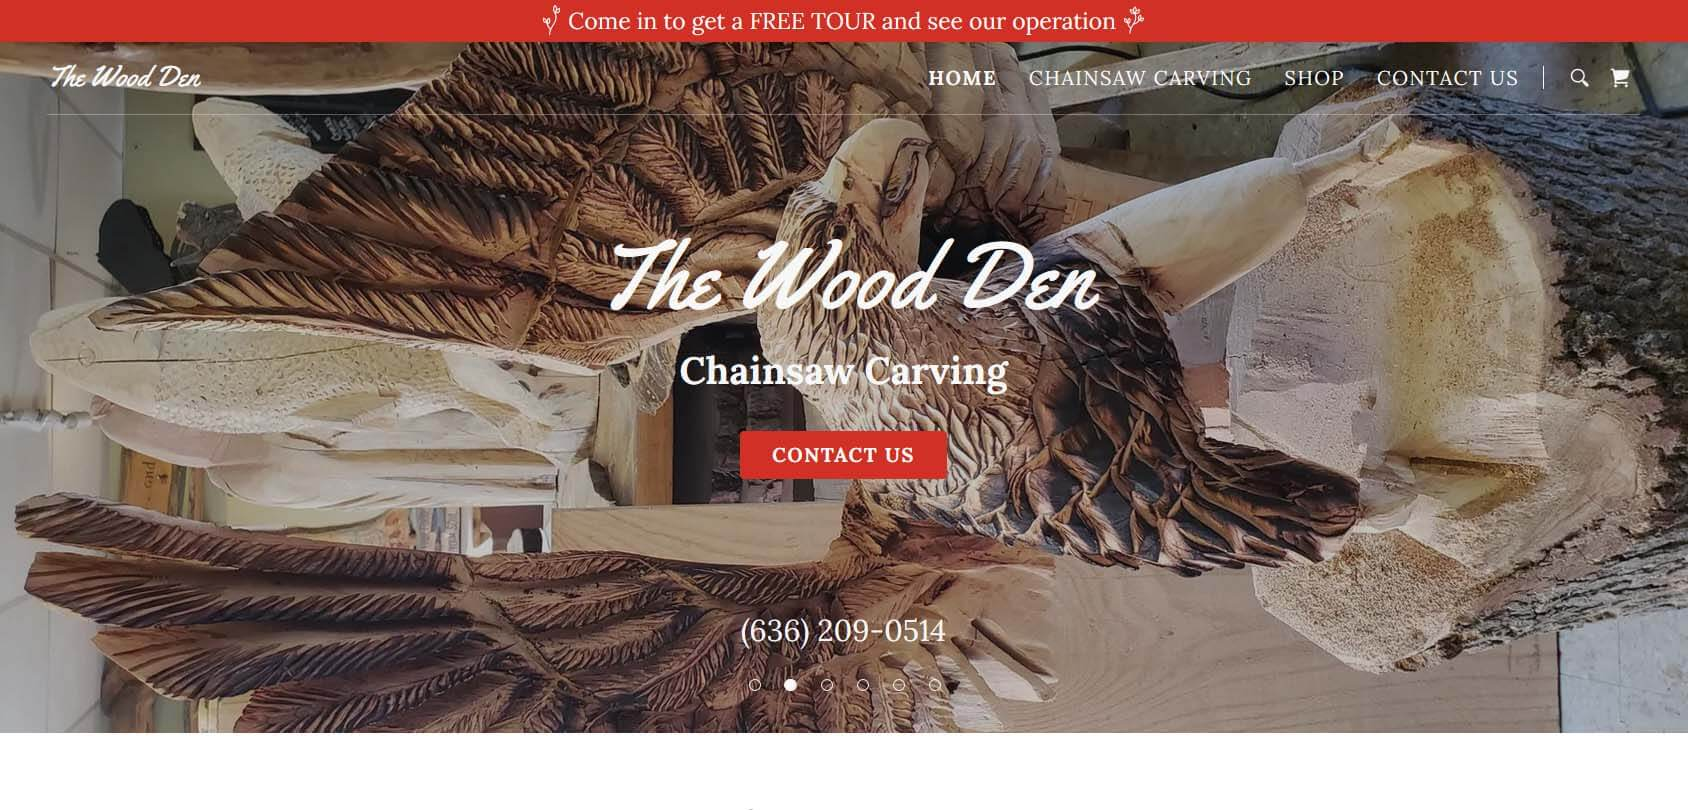 The Wood Den Homepage